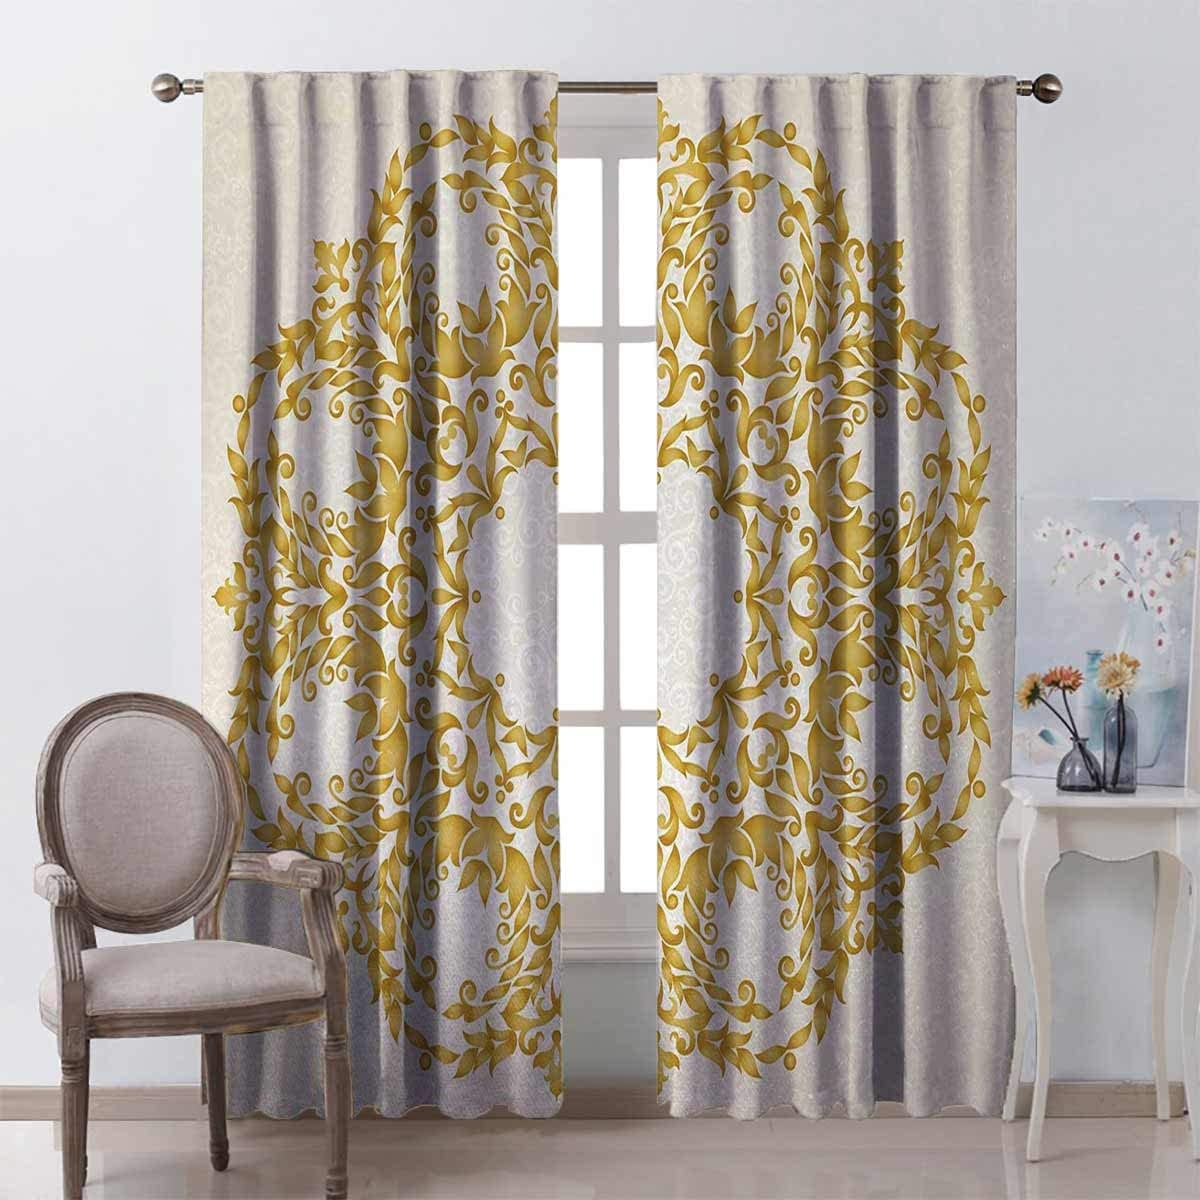 23W x 63L Blackout Shades Victorian Kids Blackout Curtains Traditional Floral Round Circle with Baroque Elements Turkish Ottoman Style Art Kitchen Decor Cream Yellow Rod Pocket Panel